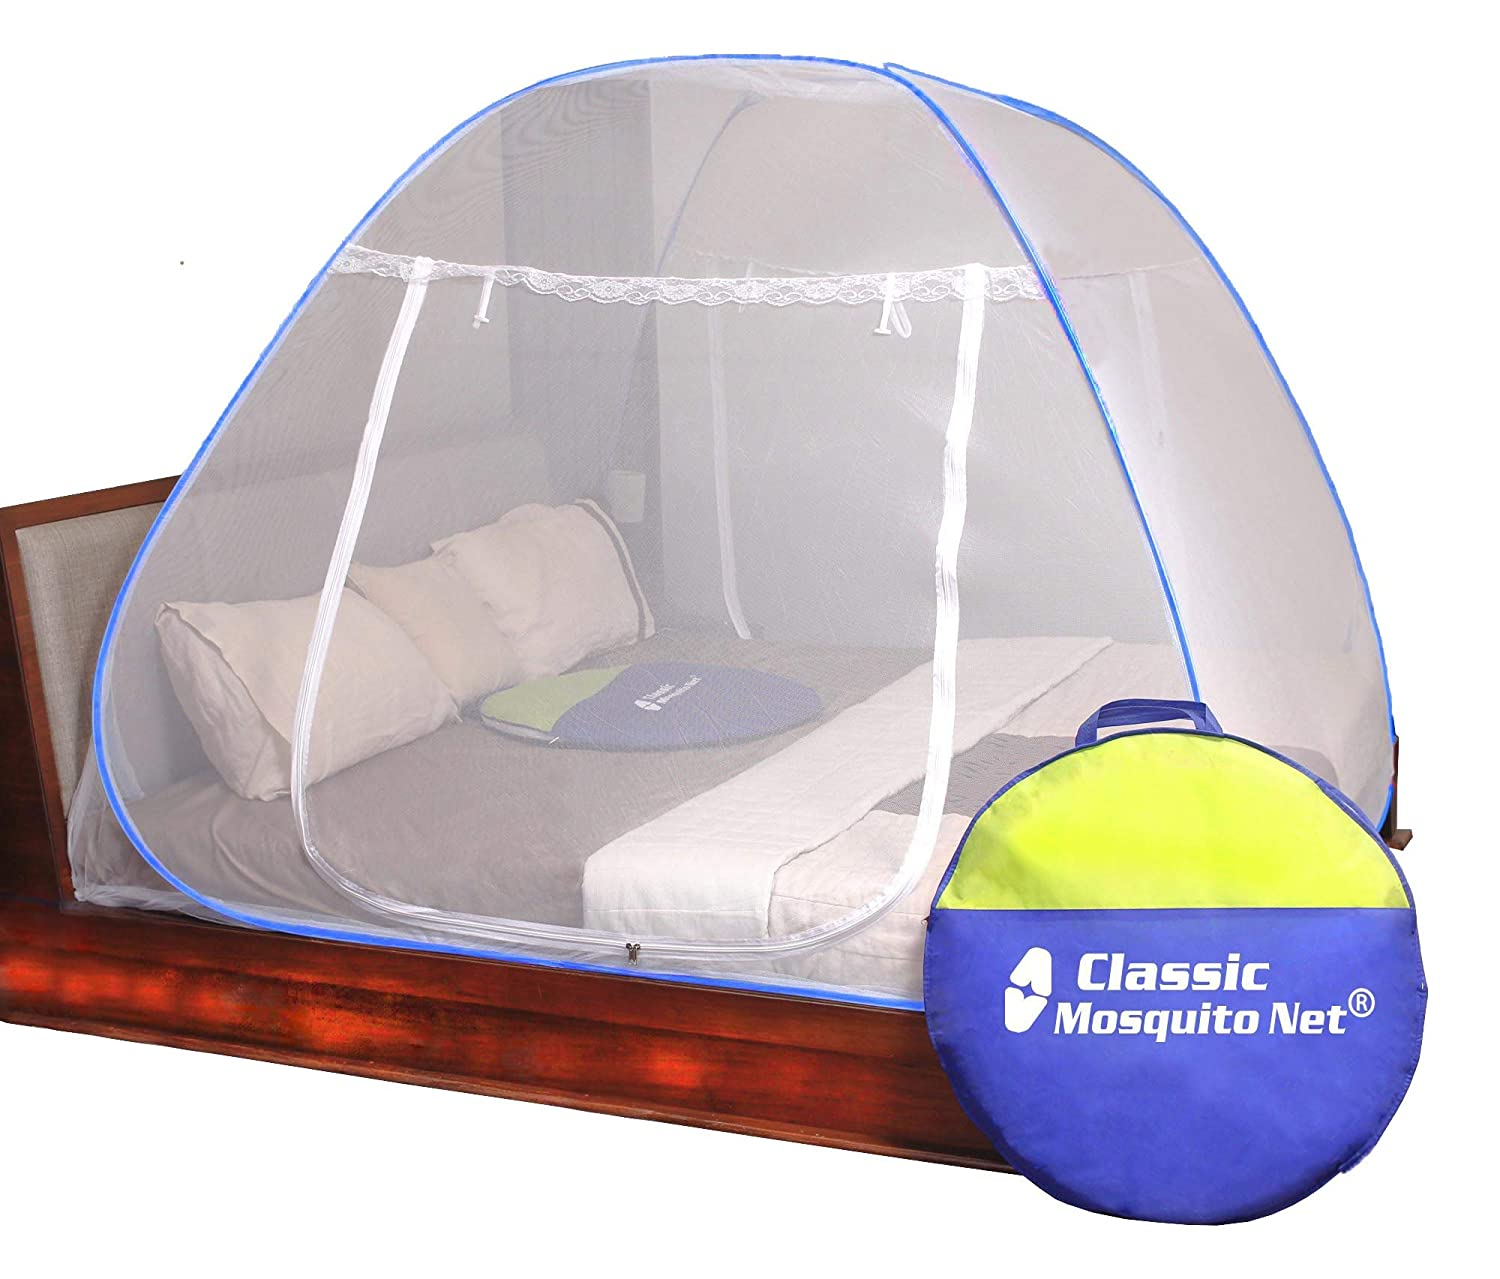 Best Mosquito nets in India 2020